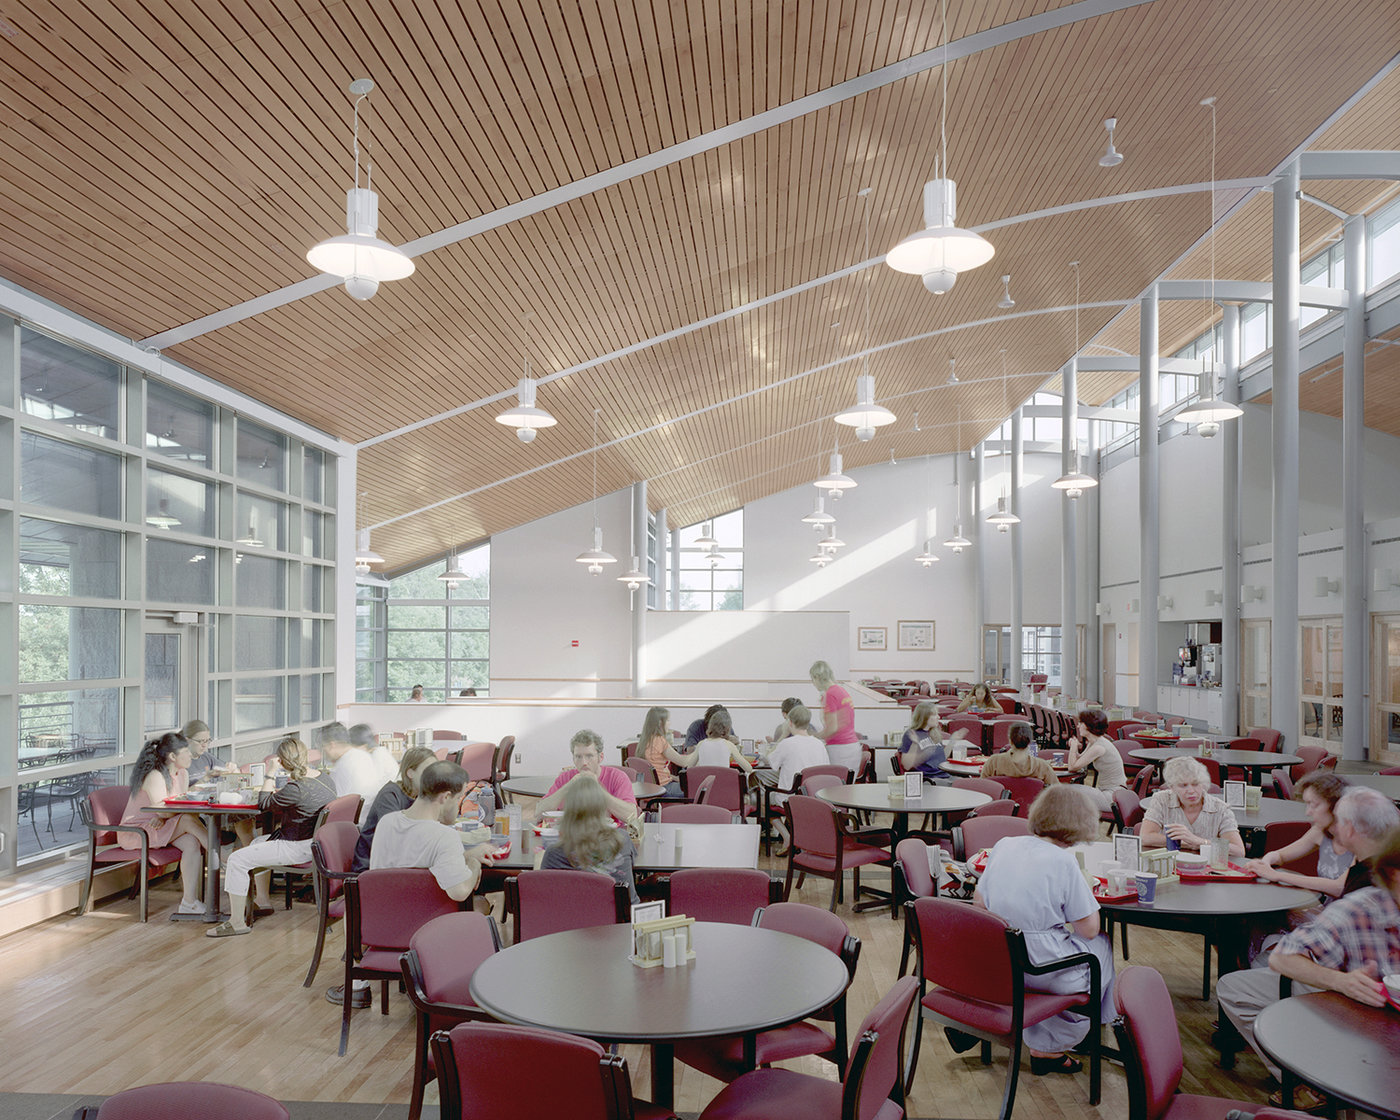 9 tskp middlebury college ross commons laforce hall interior detail dining hall view of skylights copy 1400 xxx q85